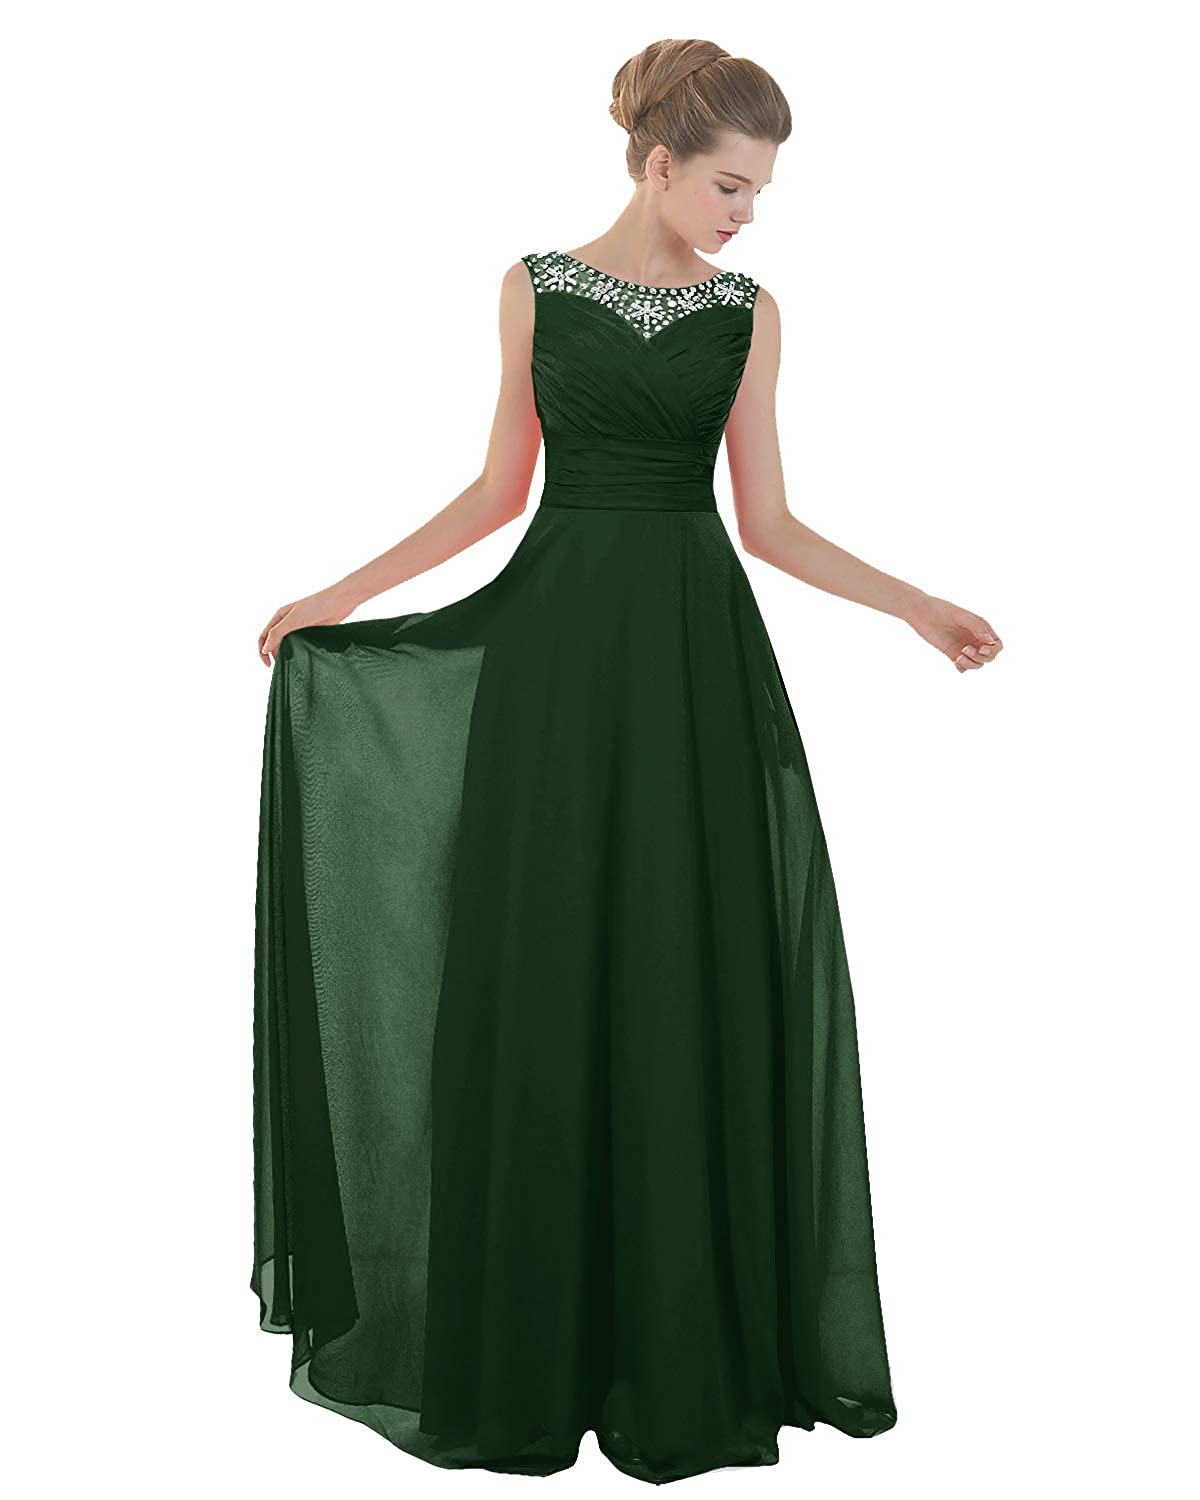 Dark Green ANGELWARDROBE Lace Neckline Beaded Prom Dresses Long Formal Evening Party Gowns Skirts